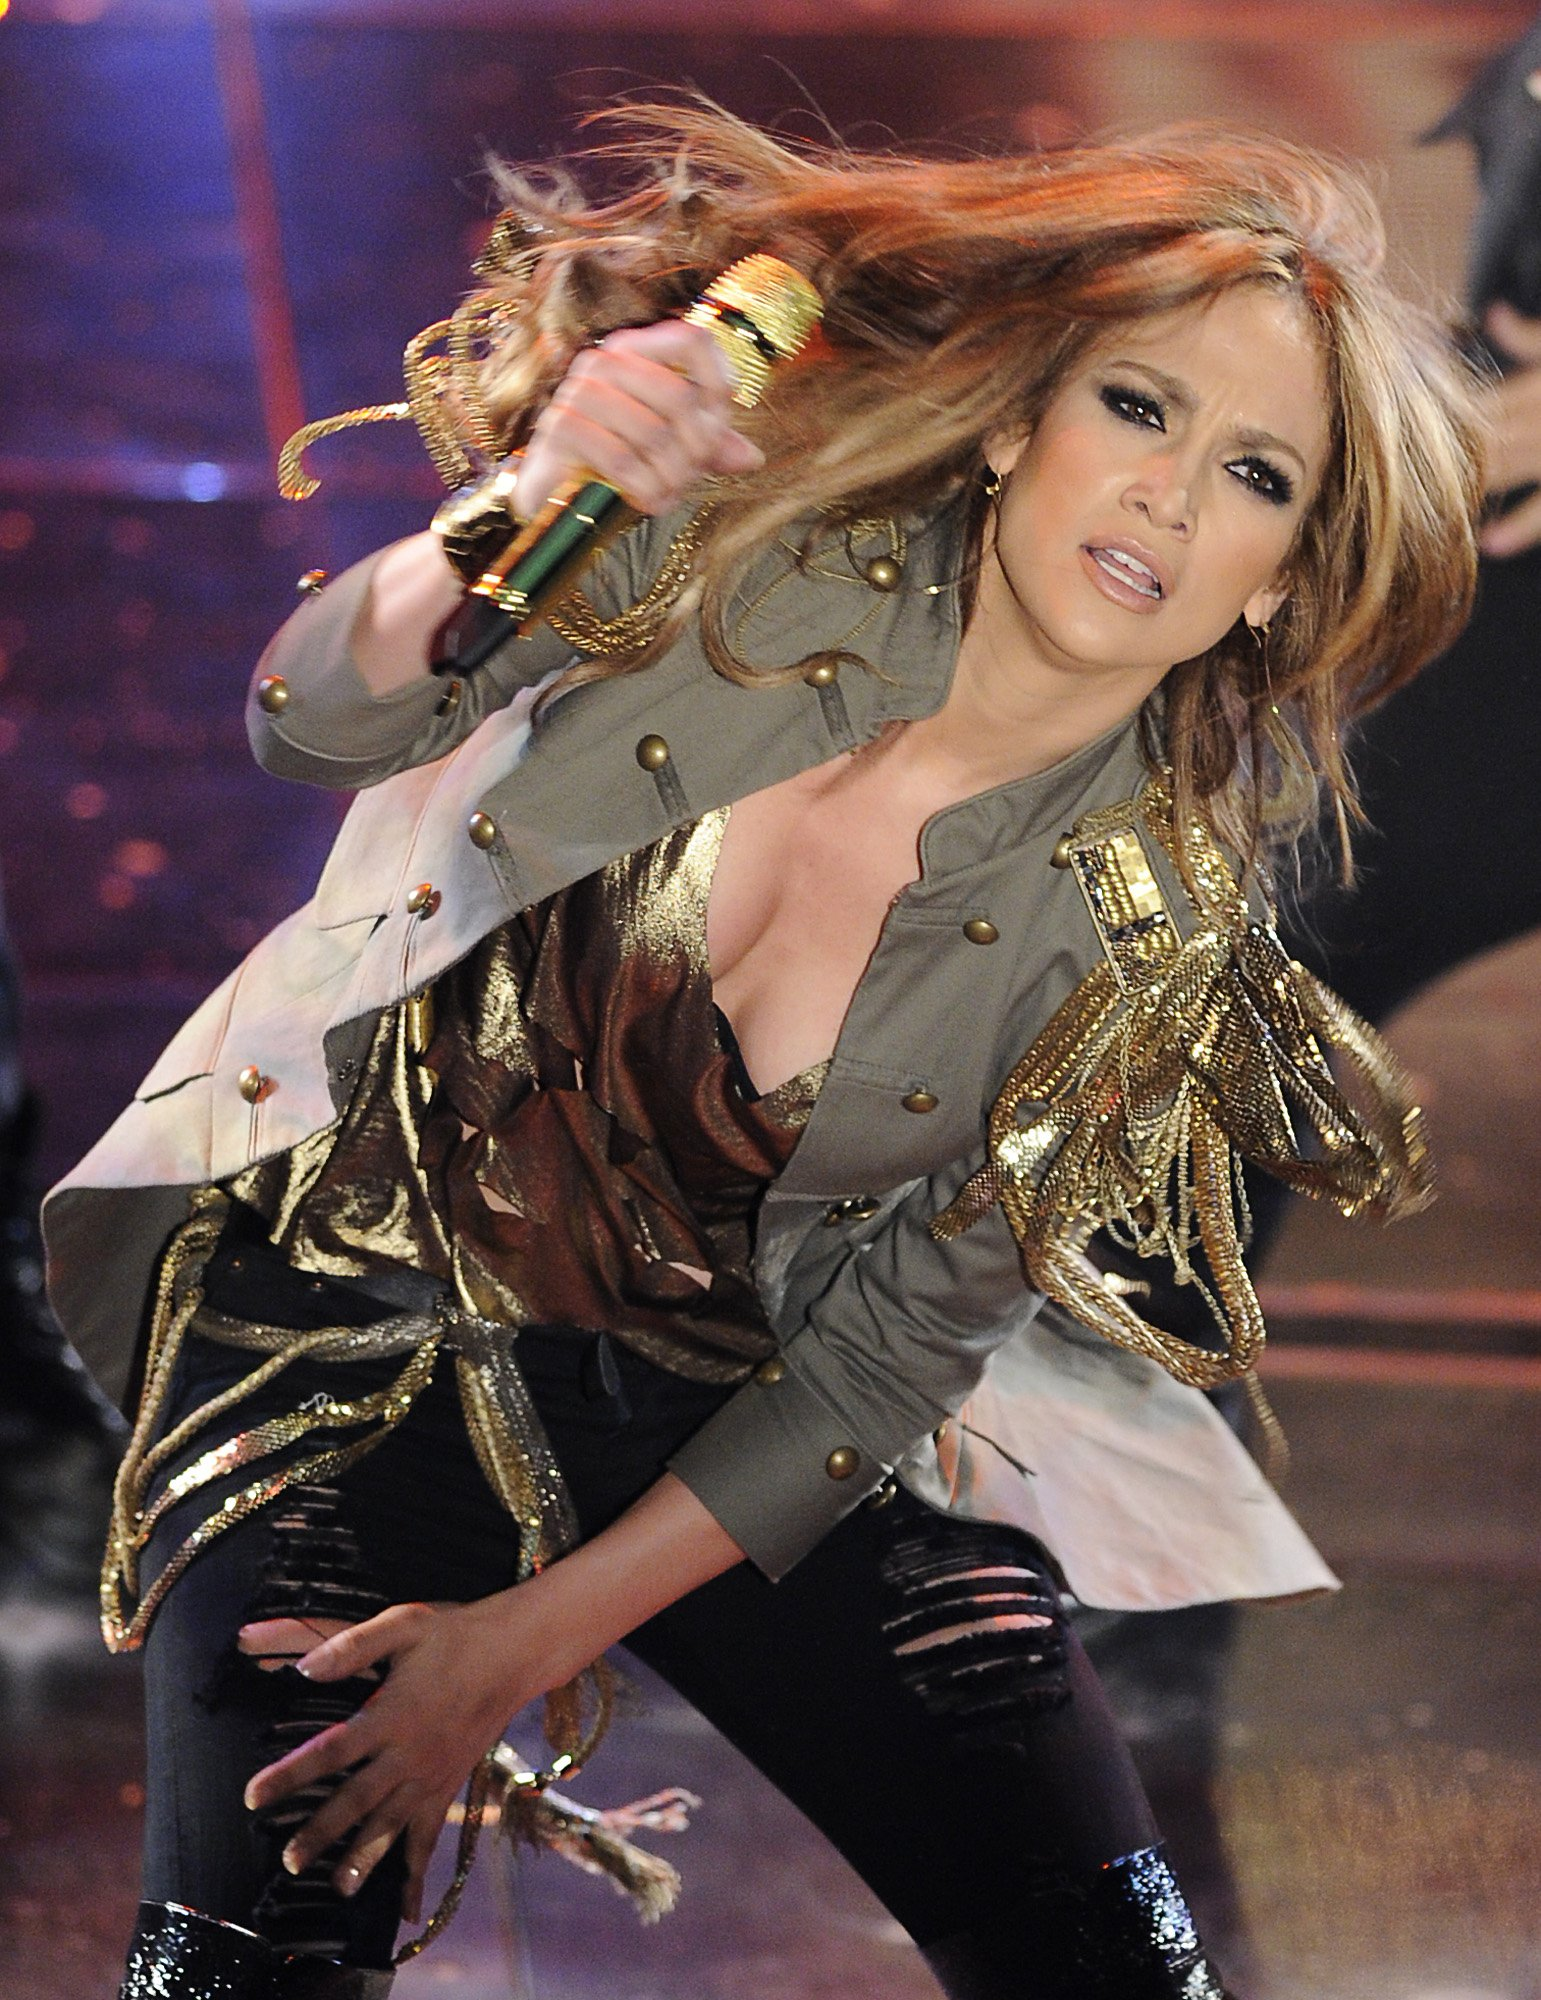 74509_Jennifer_Lopez_performs_during_the_Festival_di_Sanremo_Italian_song_contest-2_122_562lo.jpg